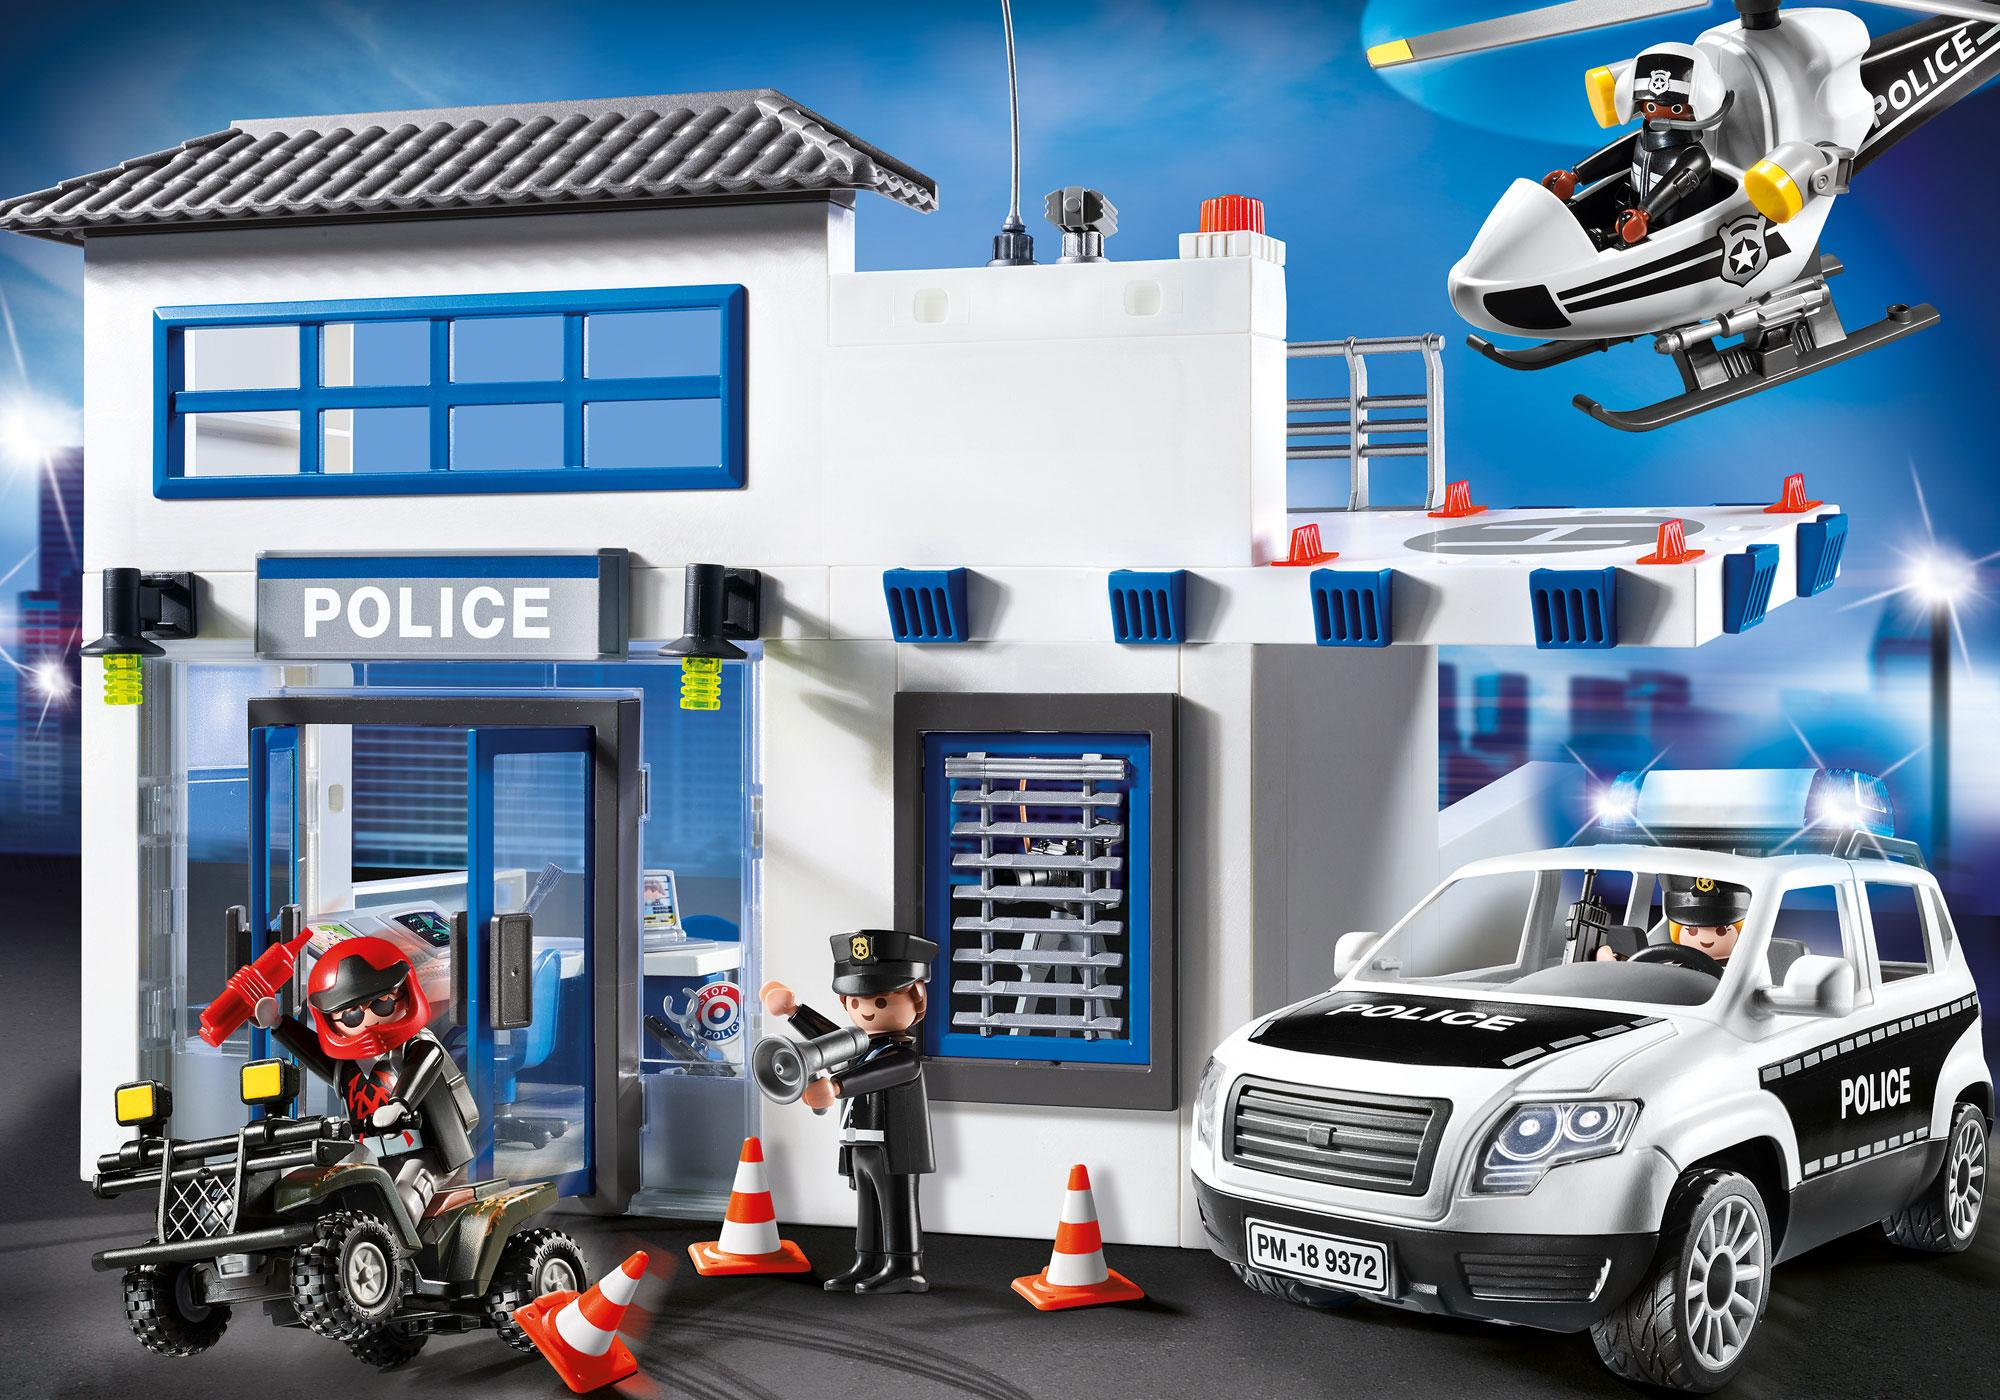 http://media.playmobil.com/i/playmobil/9372_product_detail/Mega Set de Polícia